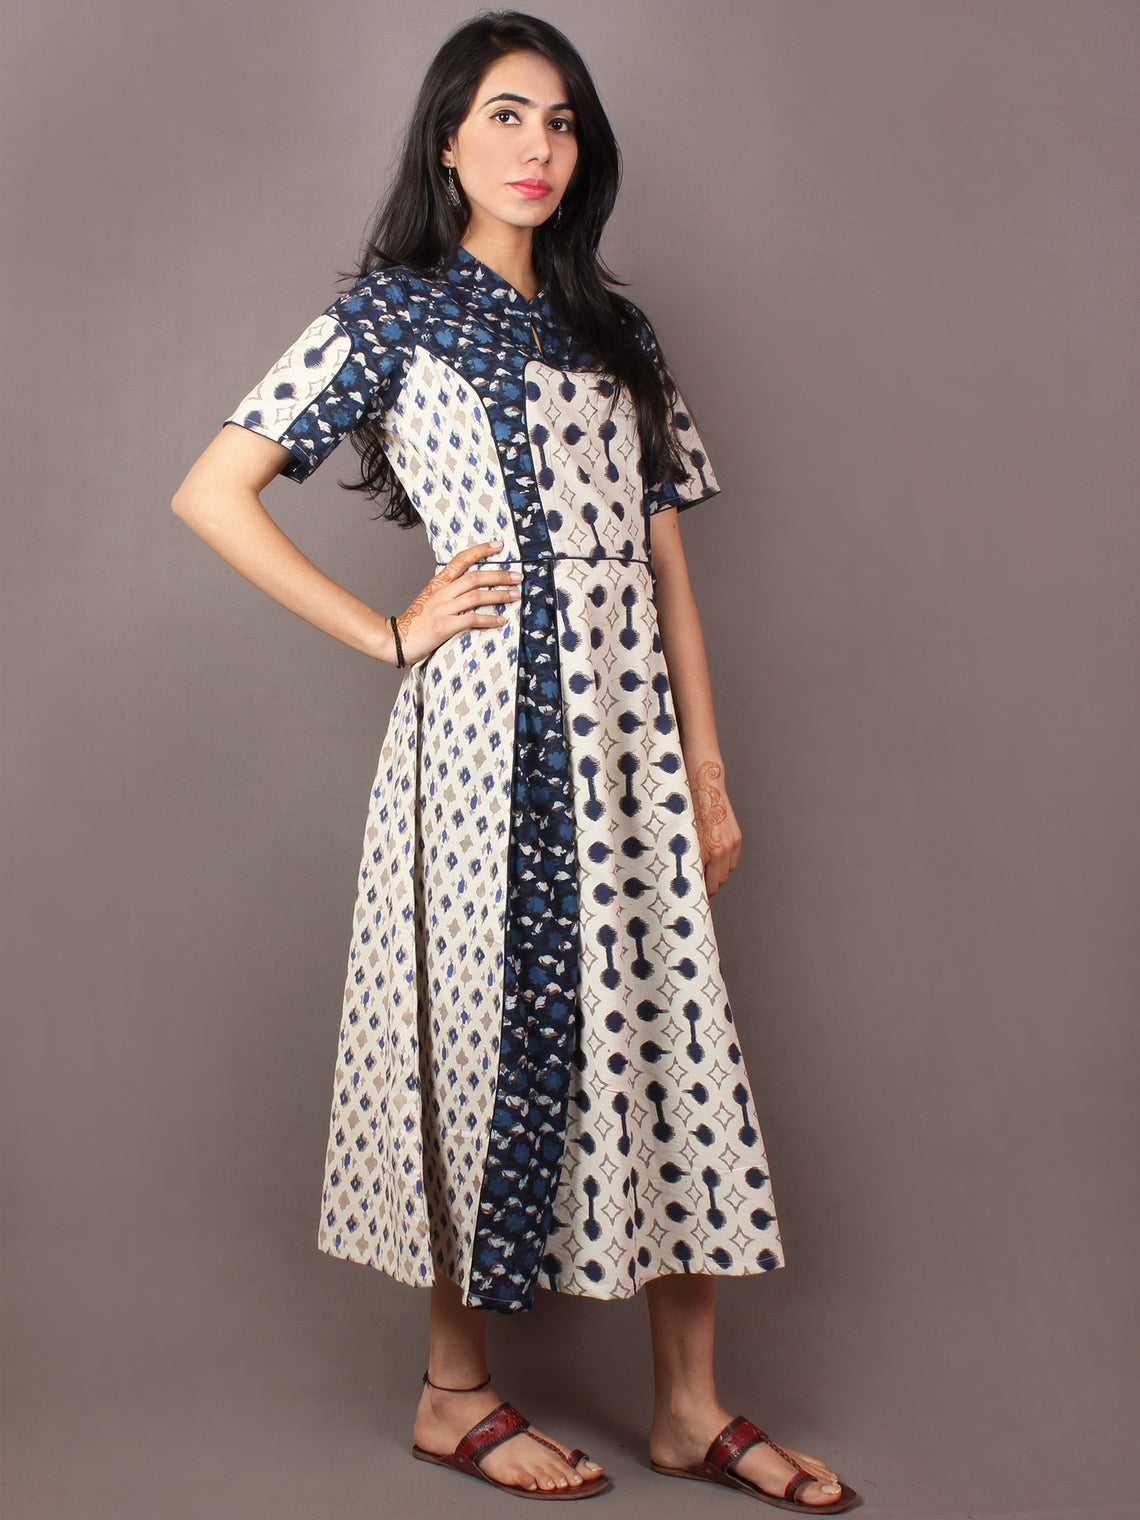 Beige Indigo Ivory Hand Block Printed Cotton Long Multi Panel Dress With Mandarin Collar & Piping All Over - D1539101